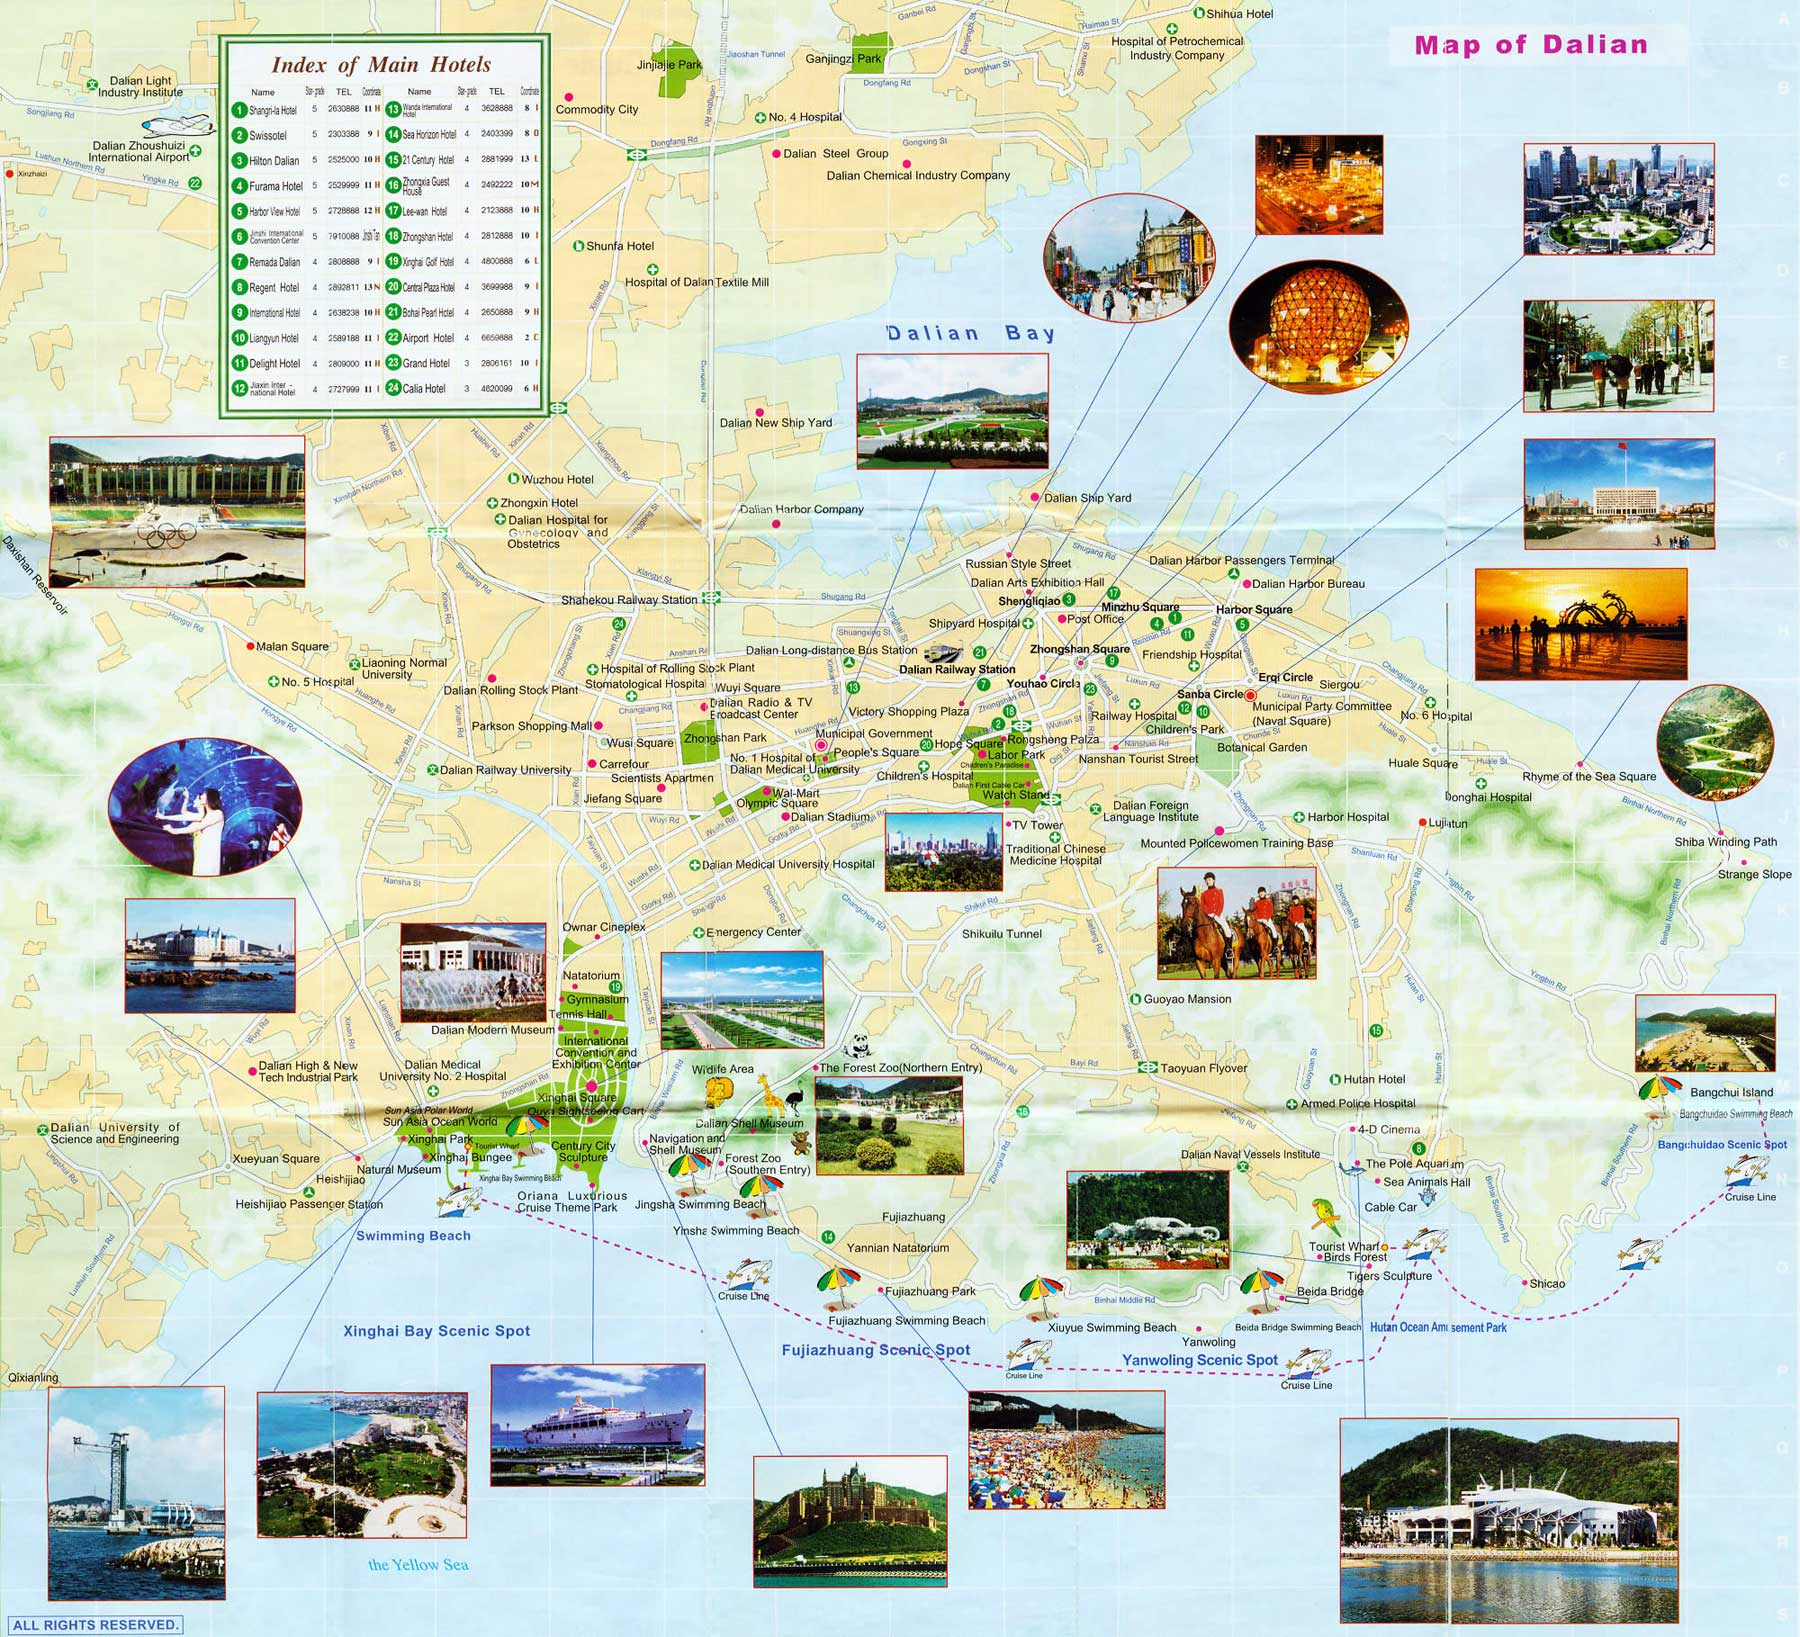 Dalian Tourist Map Dalian Tourist Attractions Map Dalian – Tourist Attractions Map In China